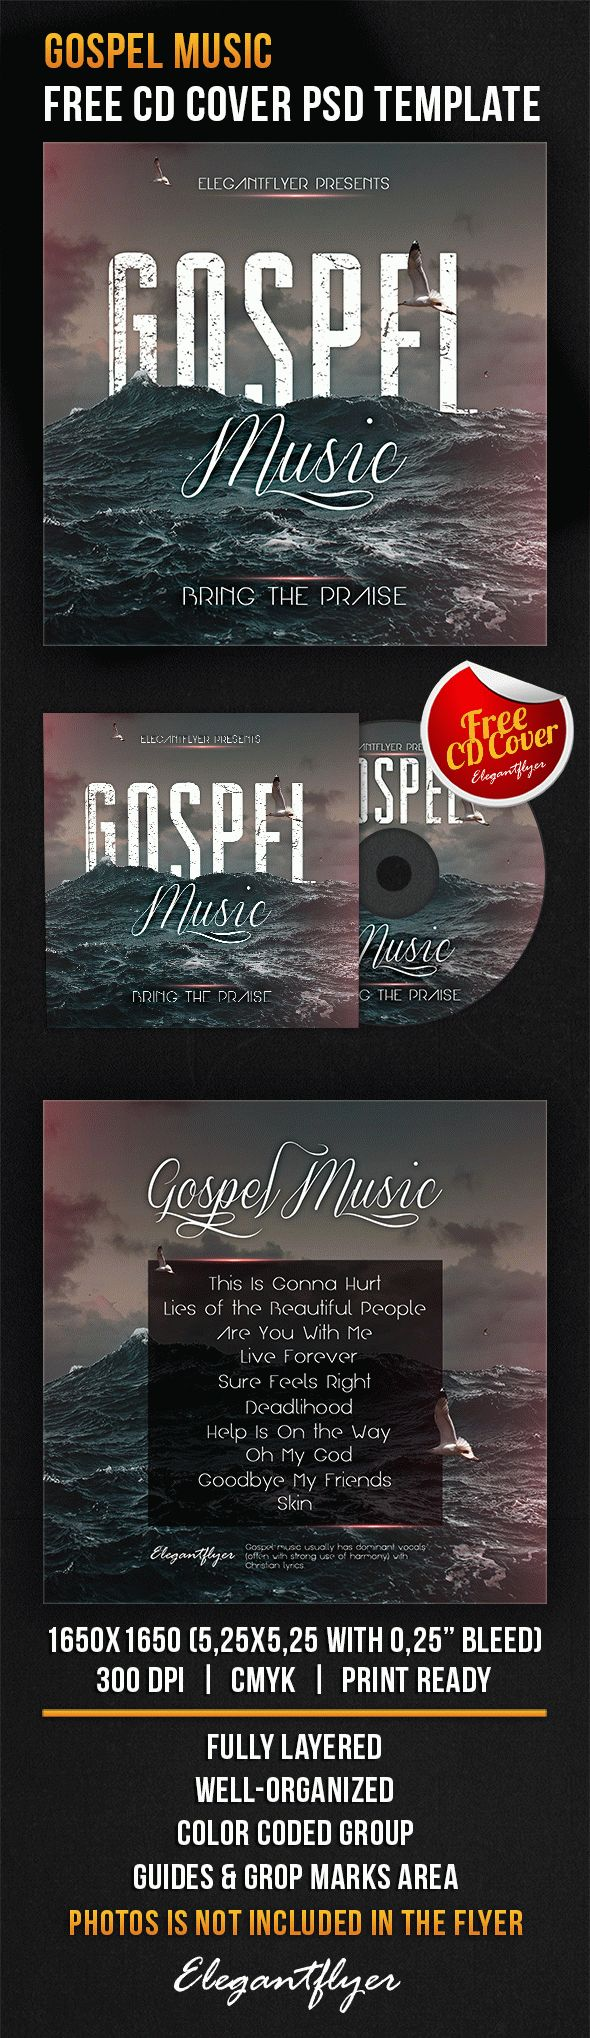 Gospel Music – Free CD Cover PSD Template